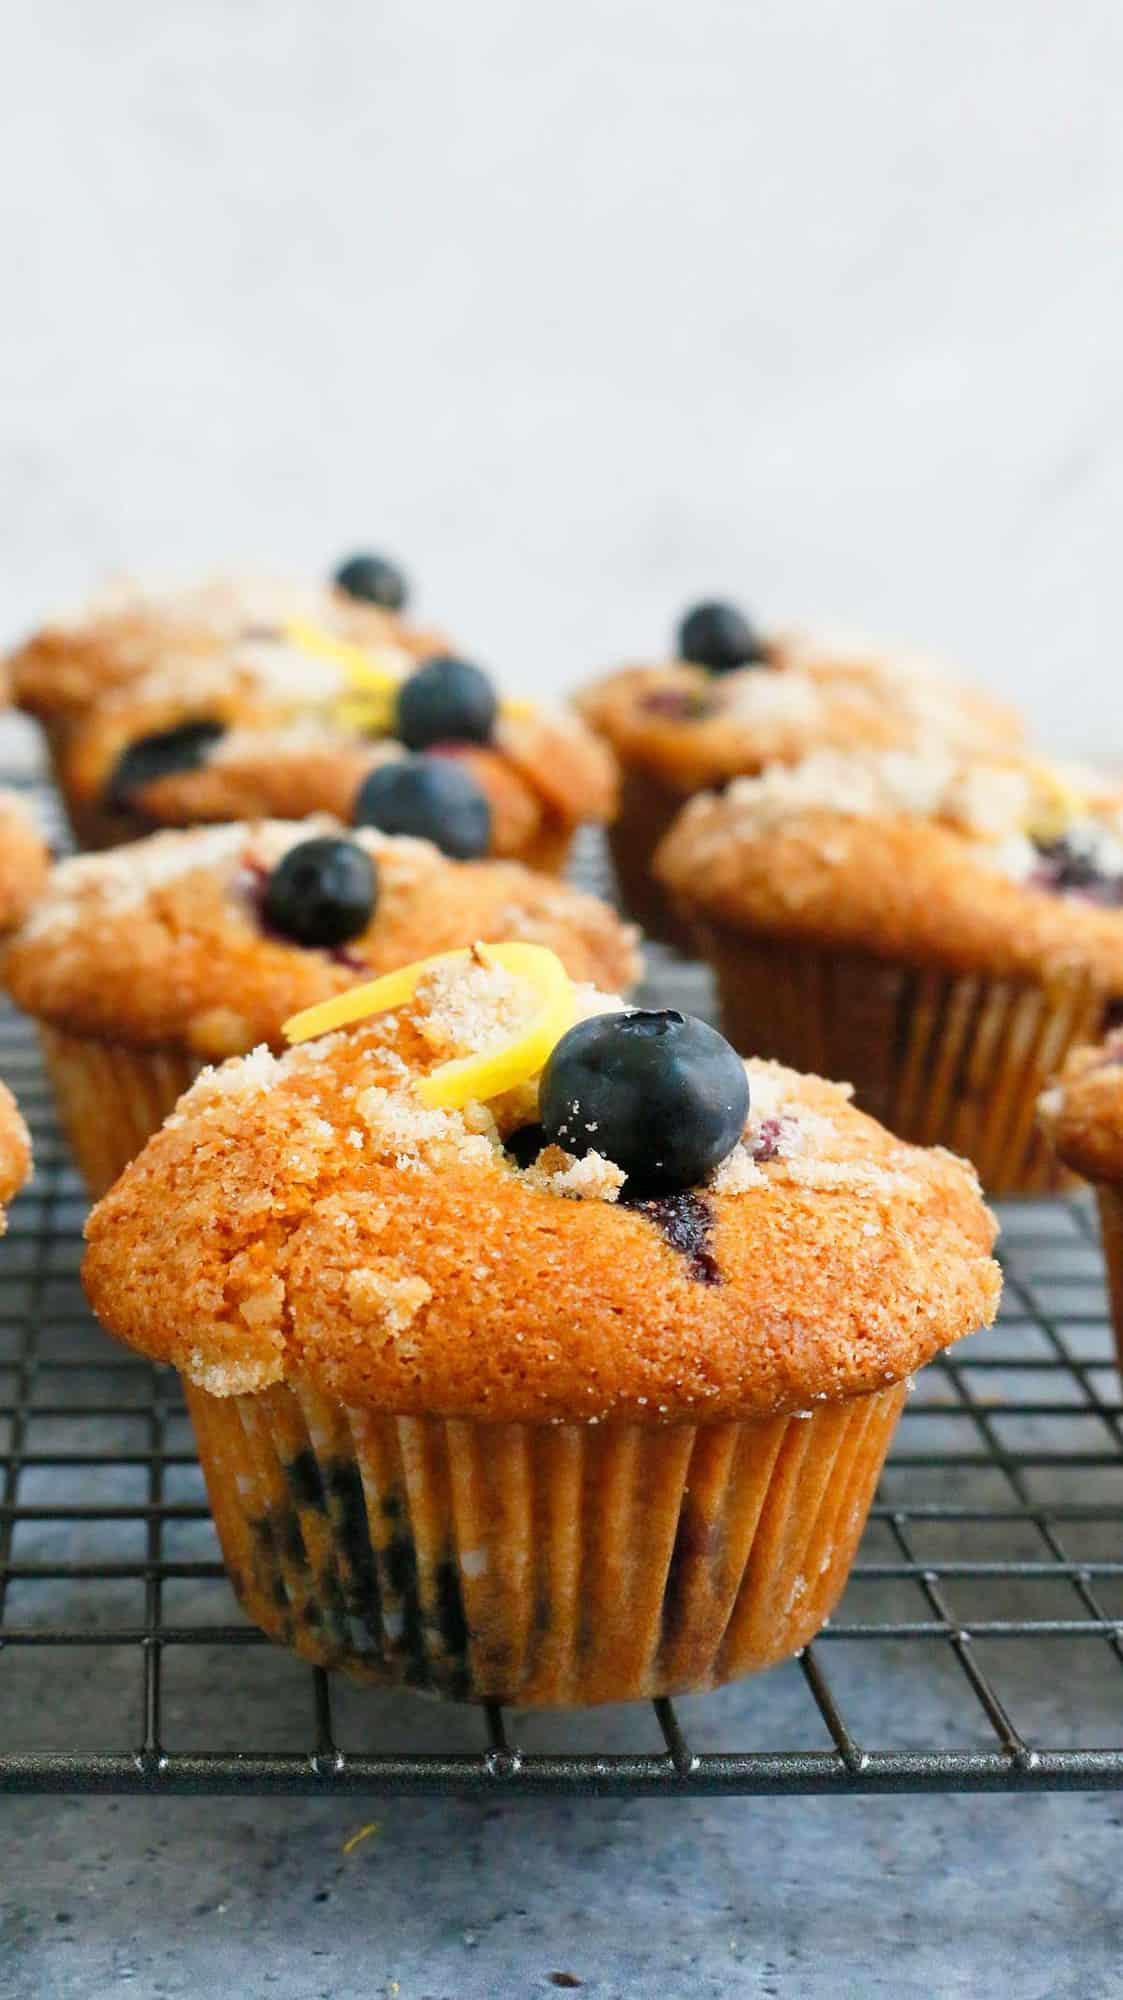 muffins garnished with blueberries & lemon zest placed on a wire rack